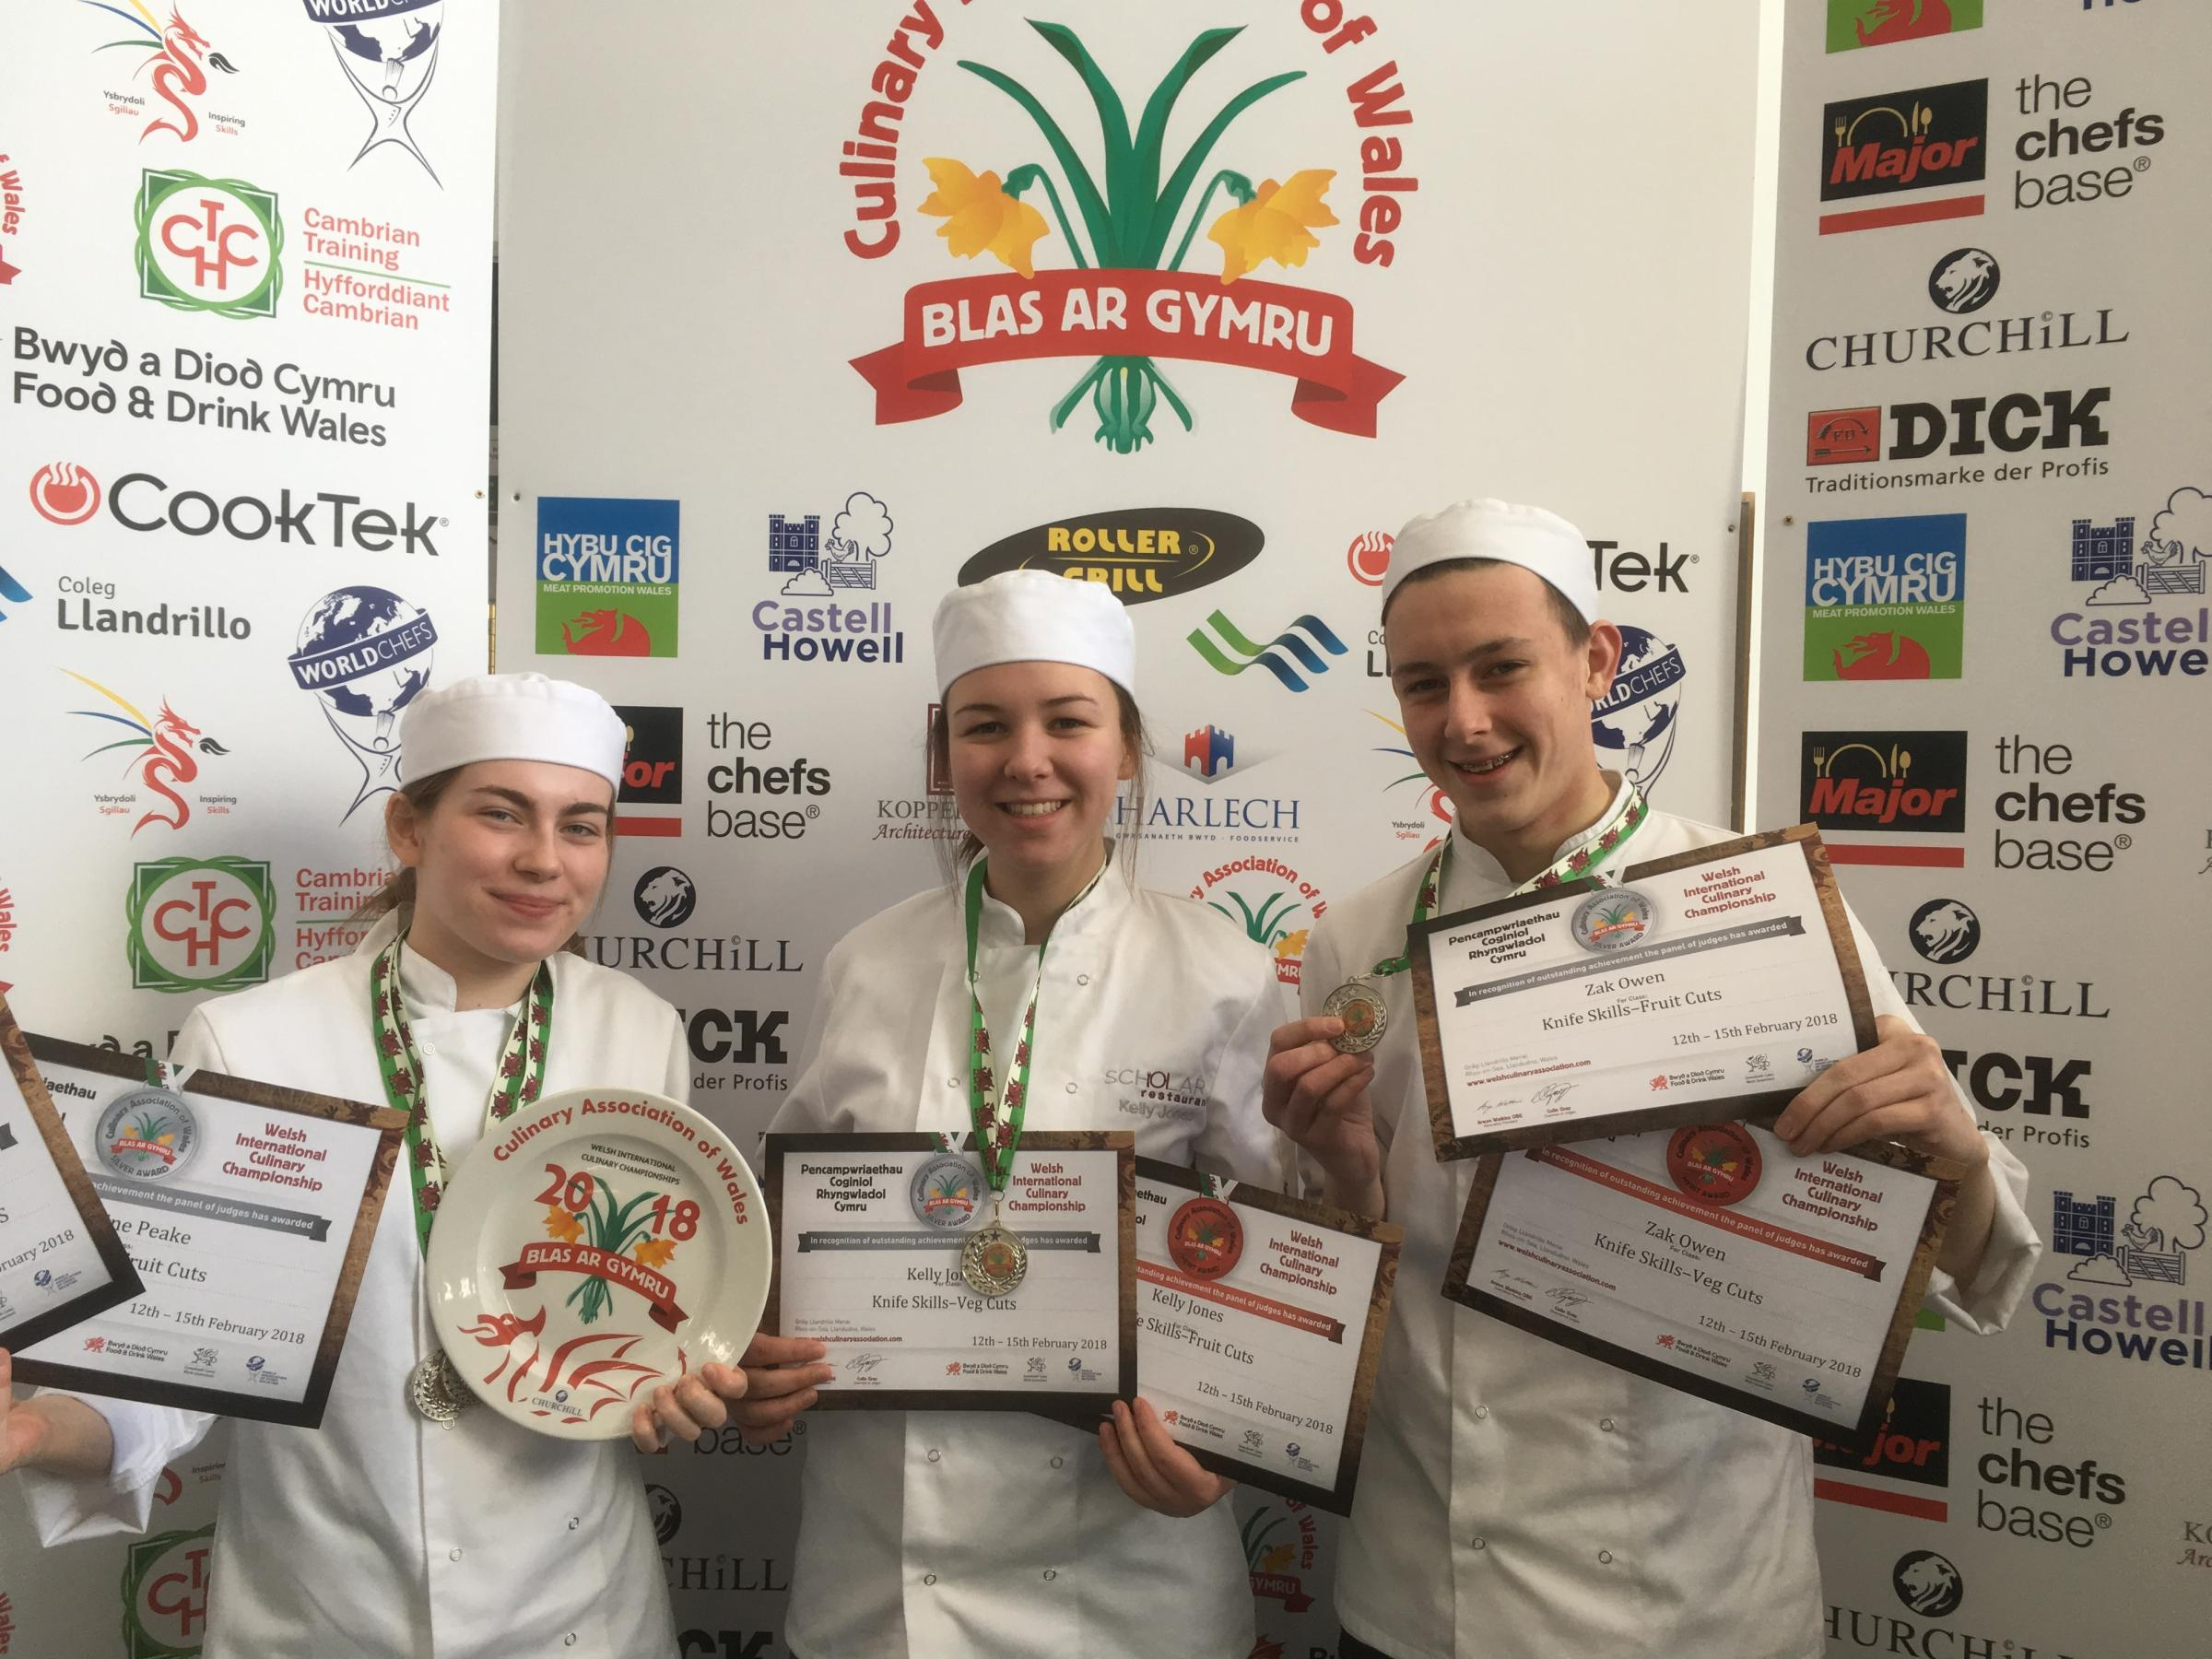 Kathryn Peake (received 2 silver medals and best in class for the week of competition for knife skills), Kelly Jones (silver medal and a certificate of merit) and Zak Owen (silver medal and a certificate of merit) all Level 1 Professional Cookery Students